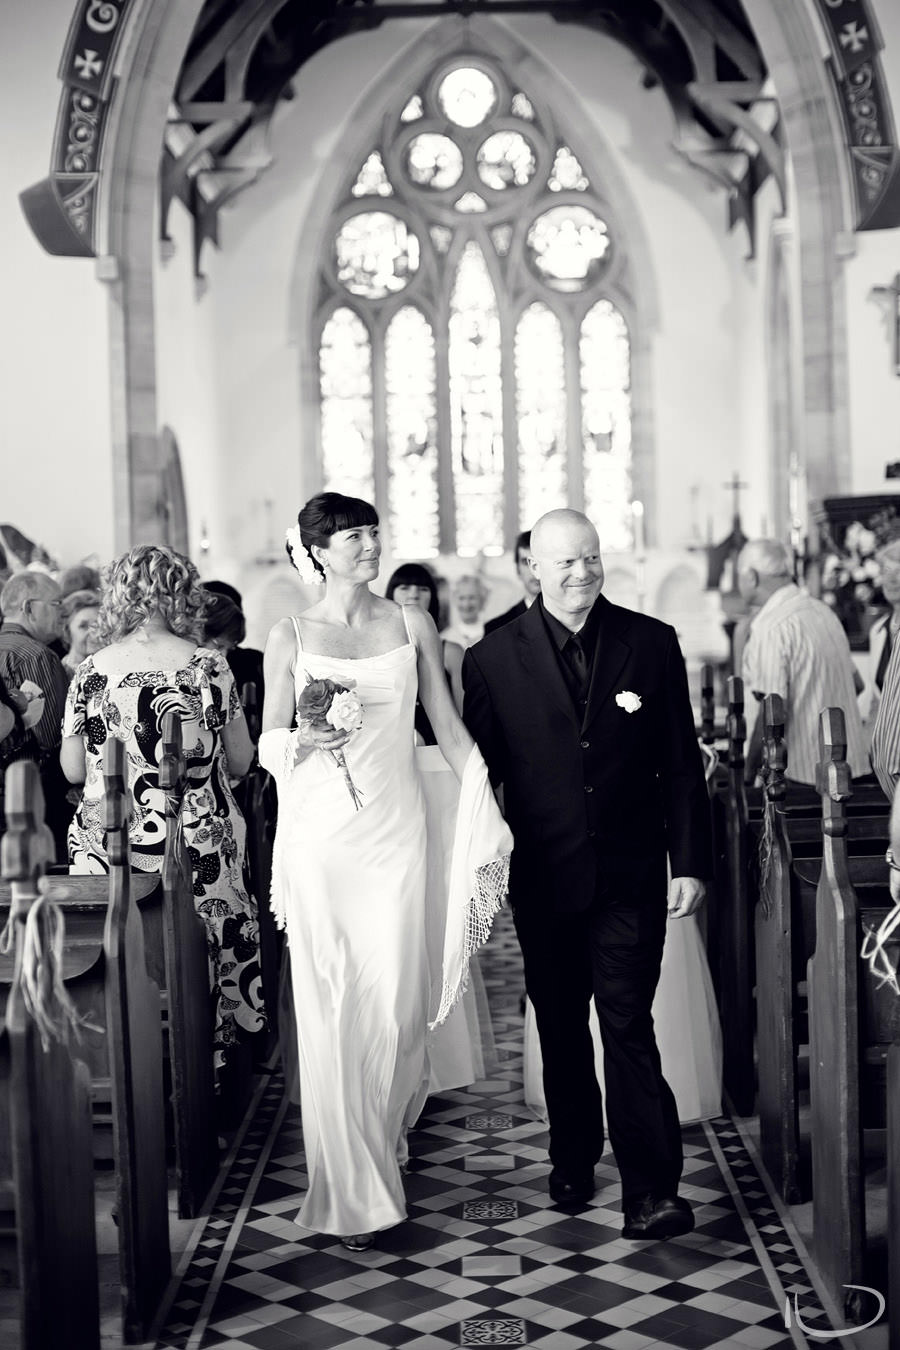 Sydney Wedding Photographer: Bride & Groom walking happily down the aisle